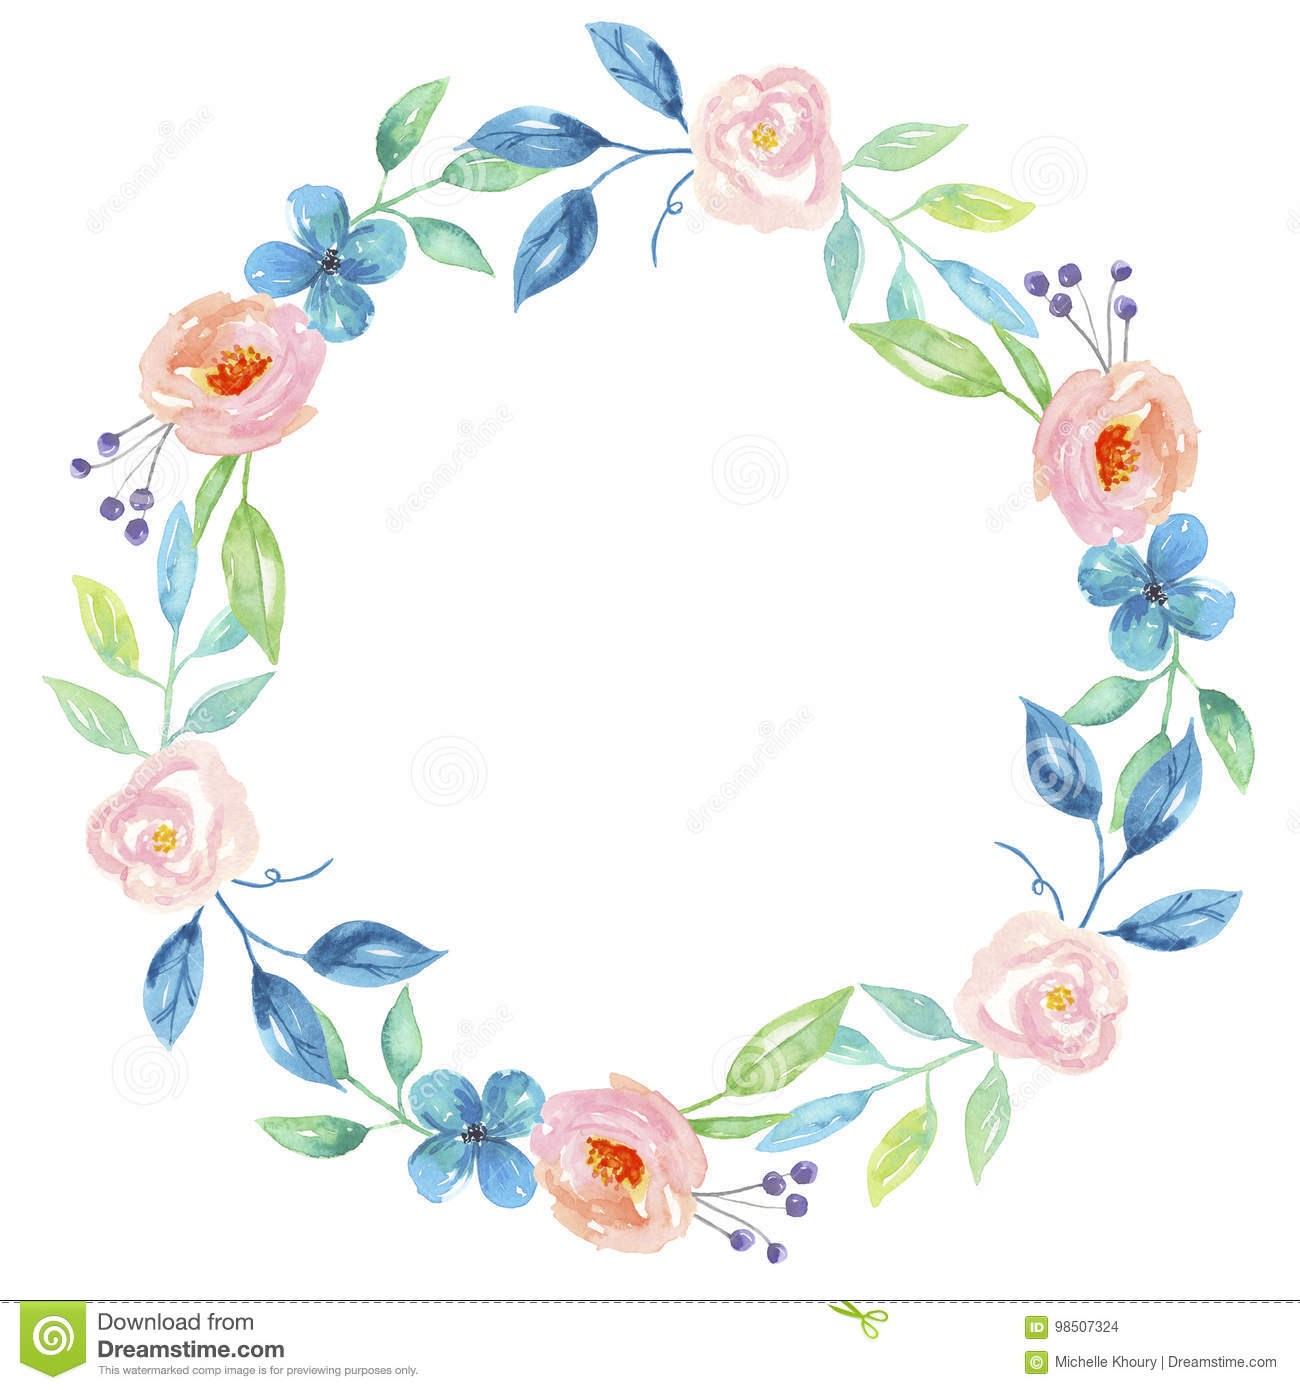 Blue Watercolor Flower Hand Painted Garland Floral Wreath Stock.